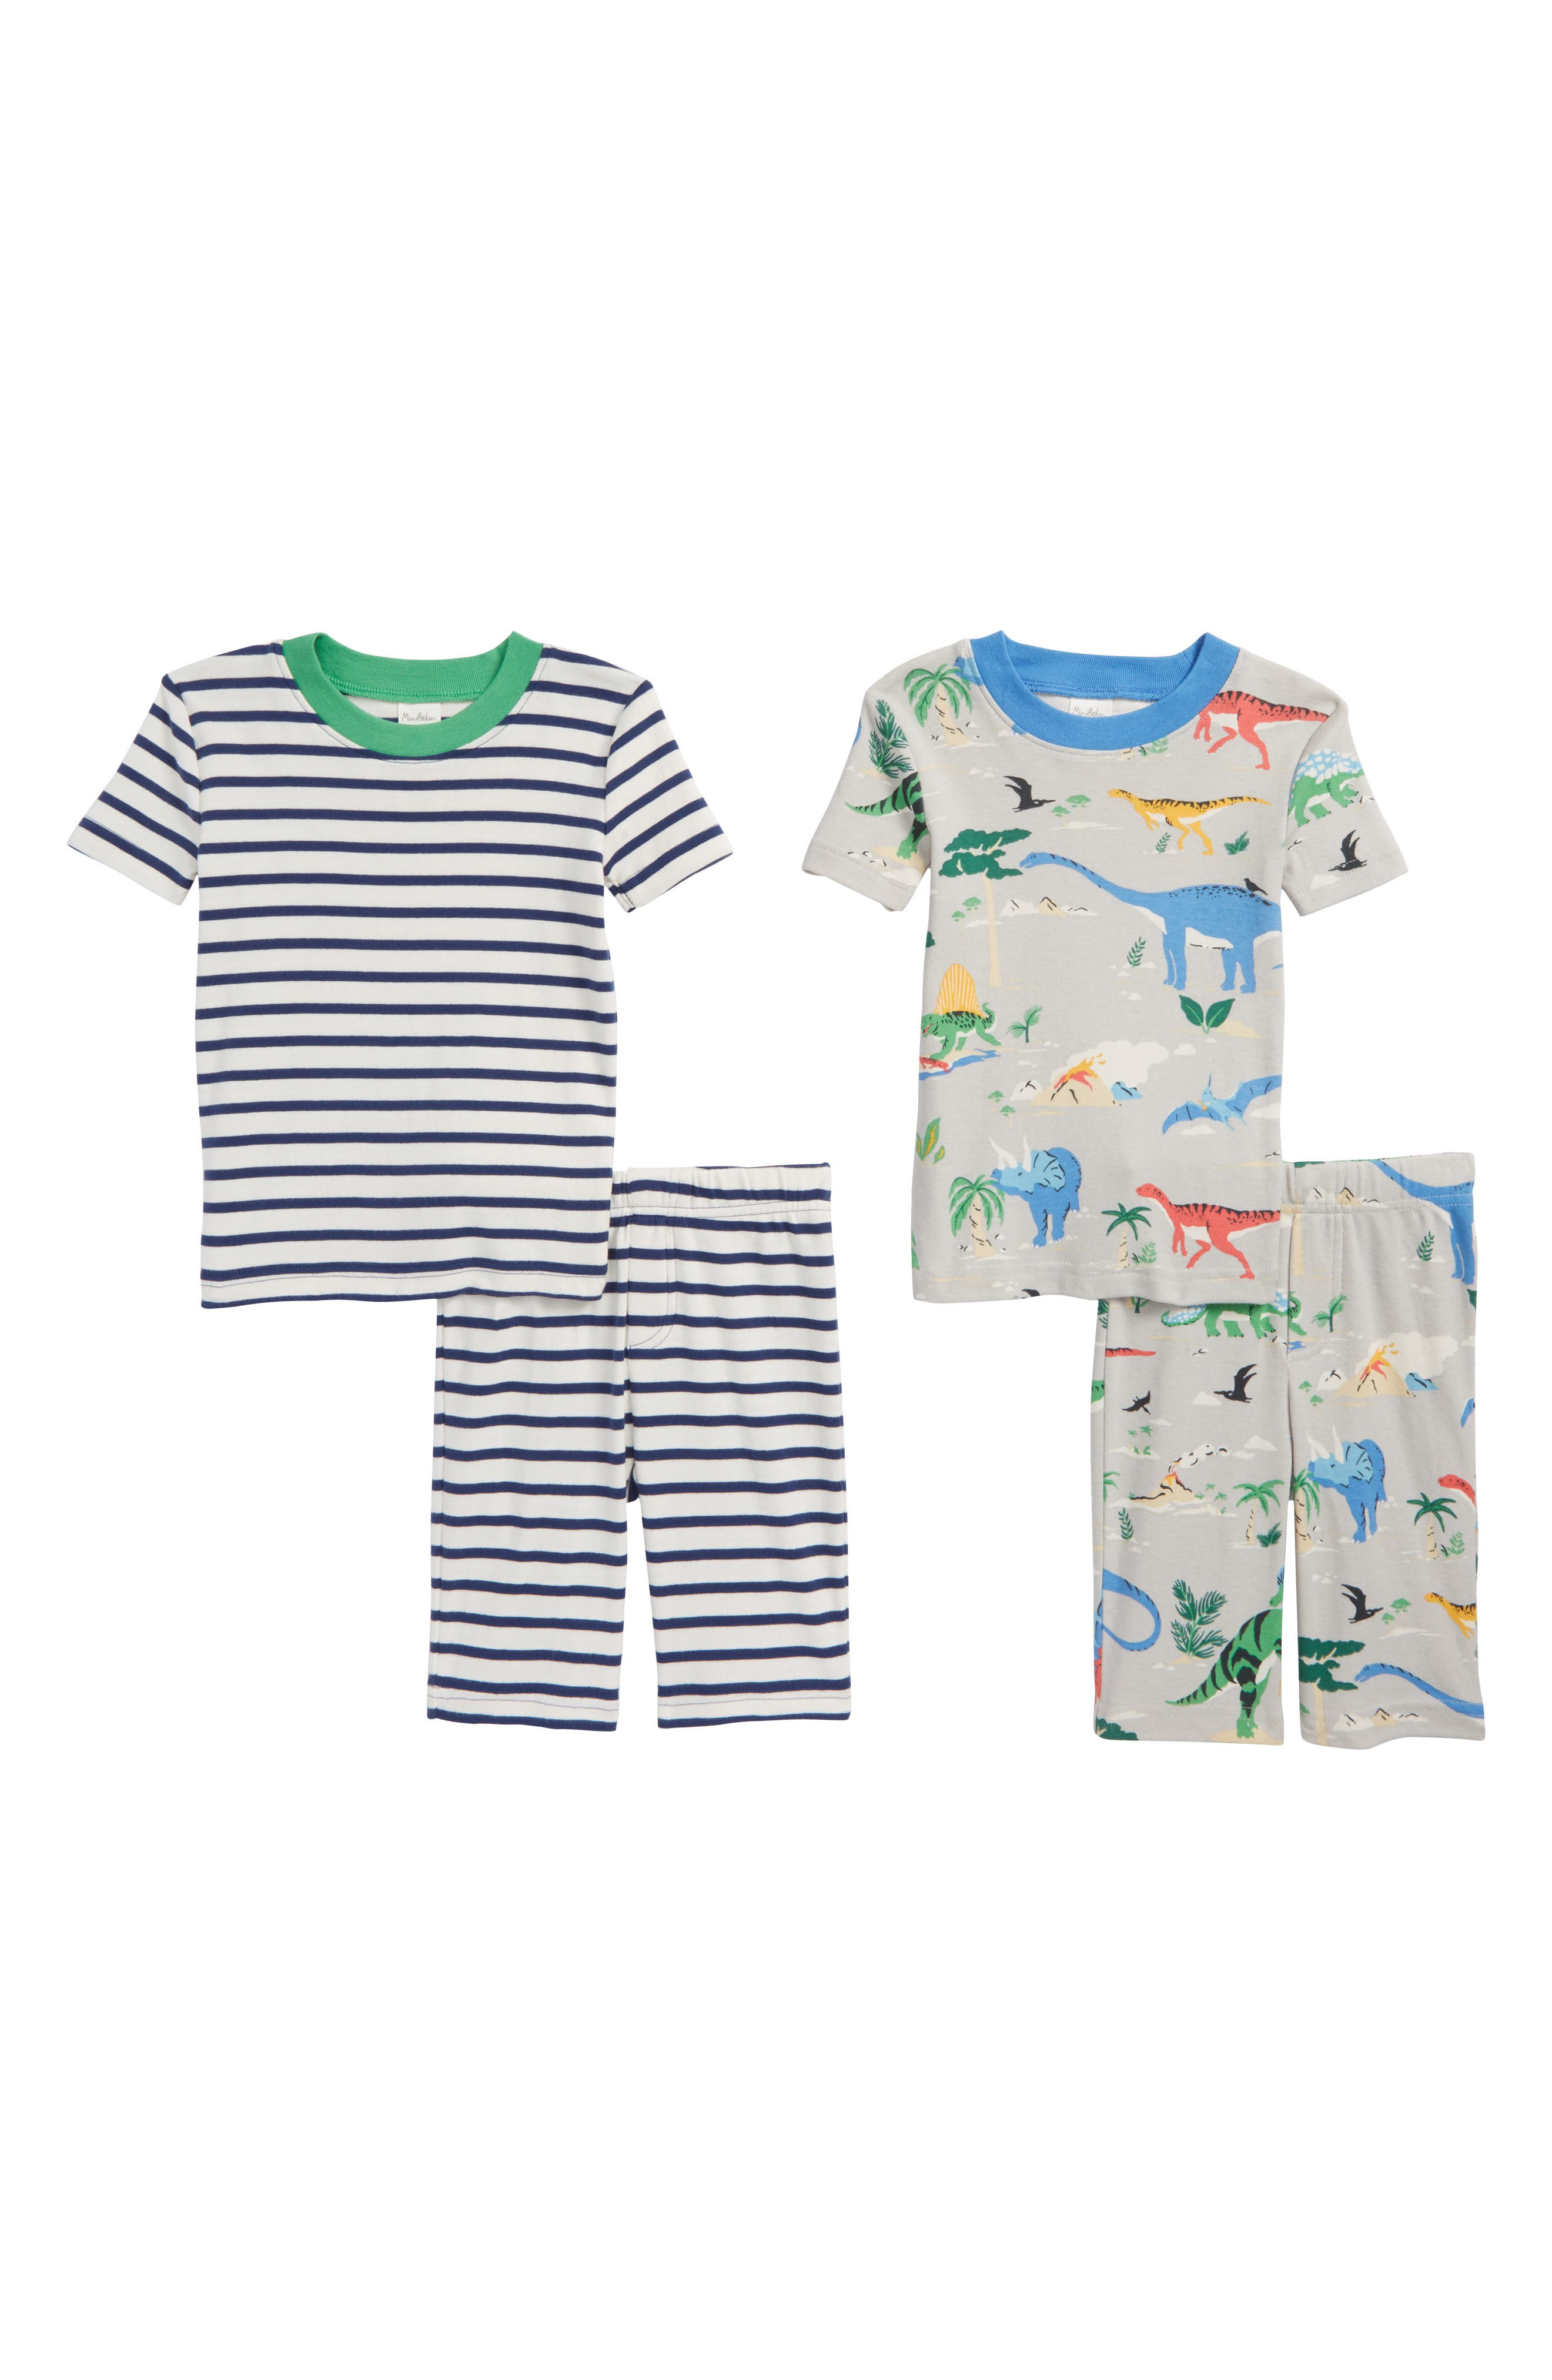 Short John 2-Pack Fitted Two-Piece Pajamas,                             Main thumbnail 1, color,                             Shale Grey Scenic Dino